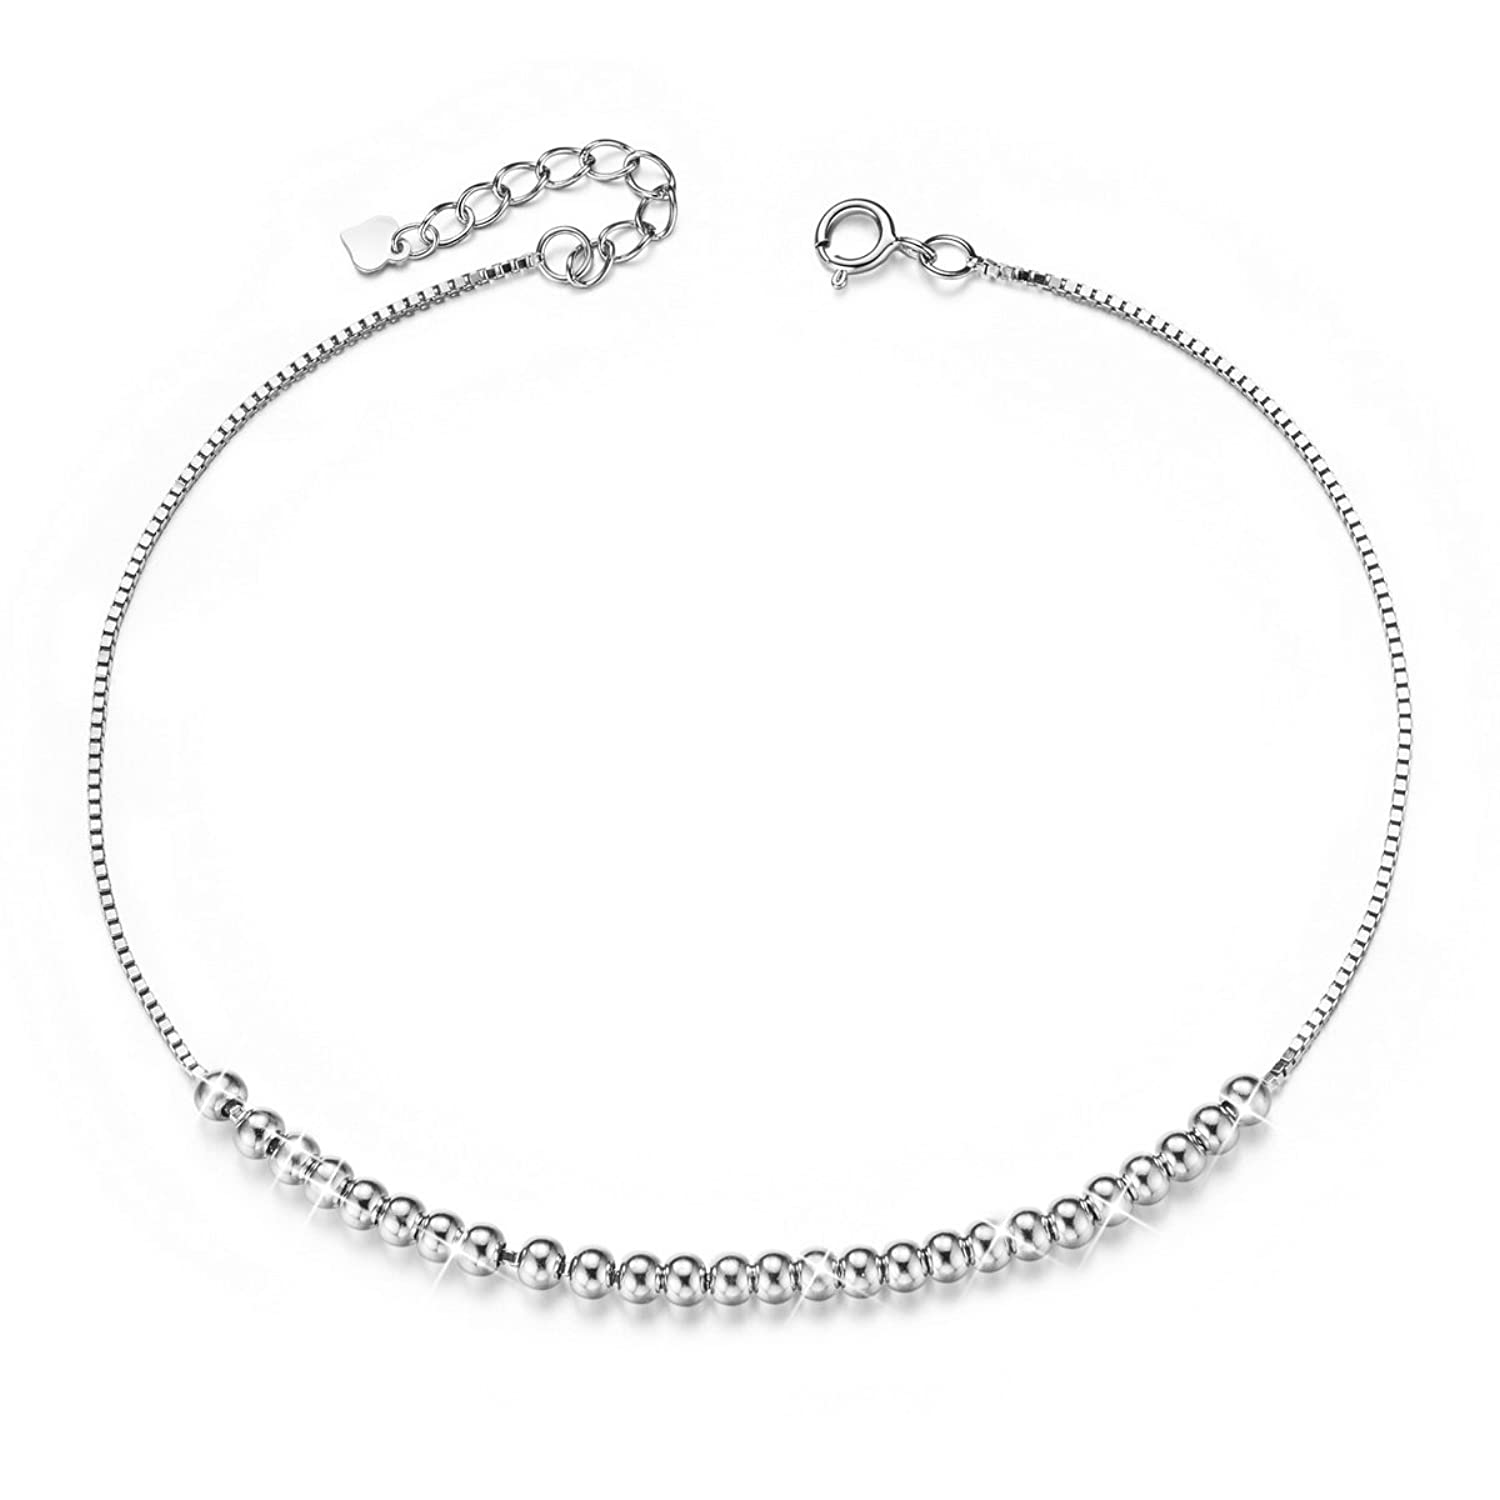 SHEGRACE Beaded Charms Anklet Bracelet for Women Silver Plated Anklet with Tiny Beads